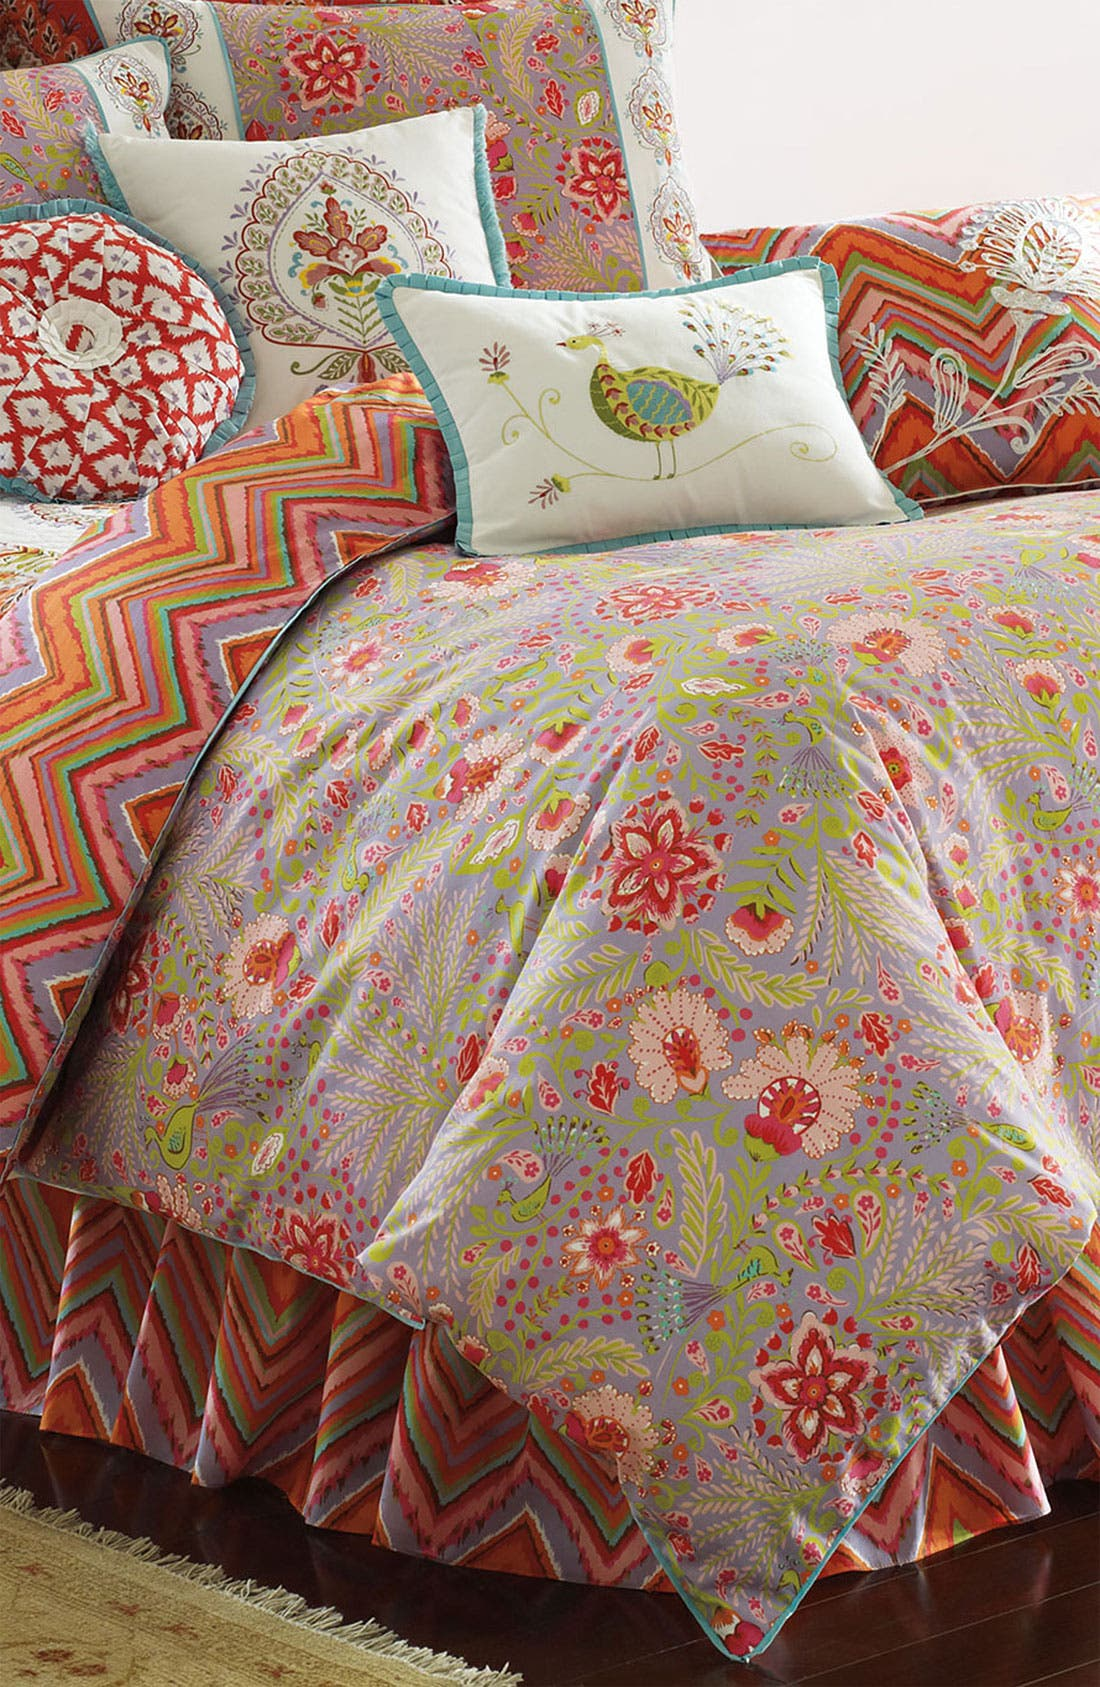 Alternate Image 1 Selected - Dena Home 'Paradiso' Comforter